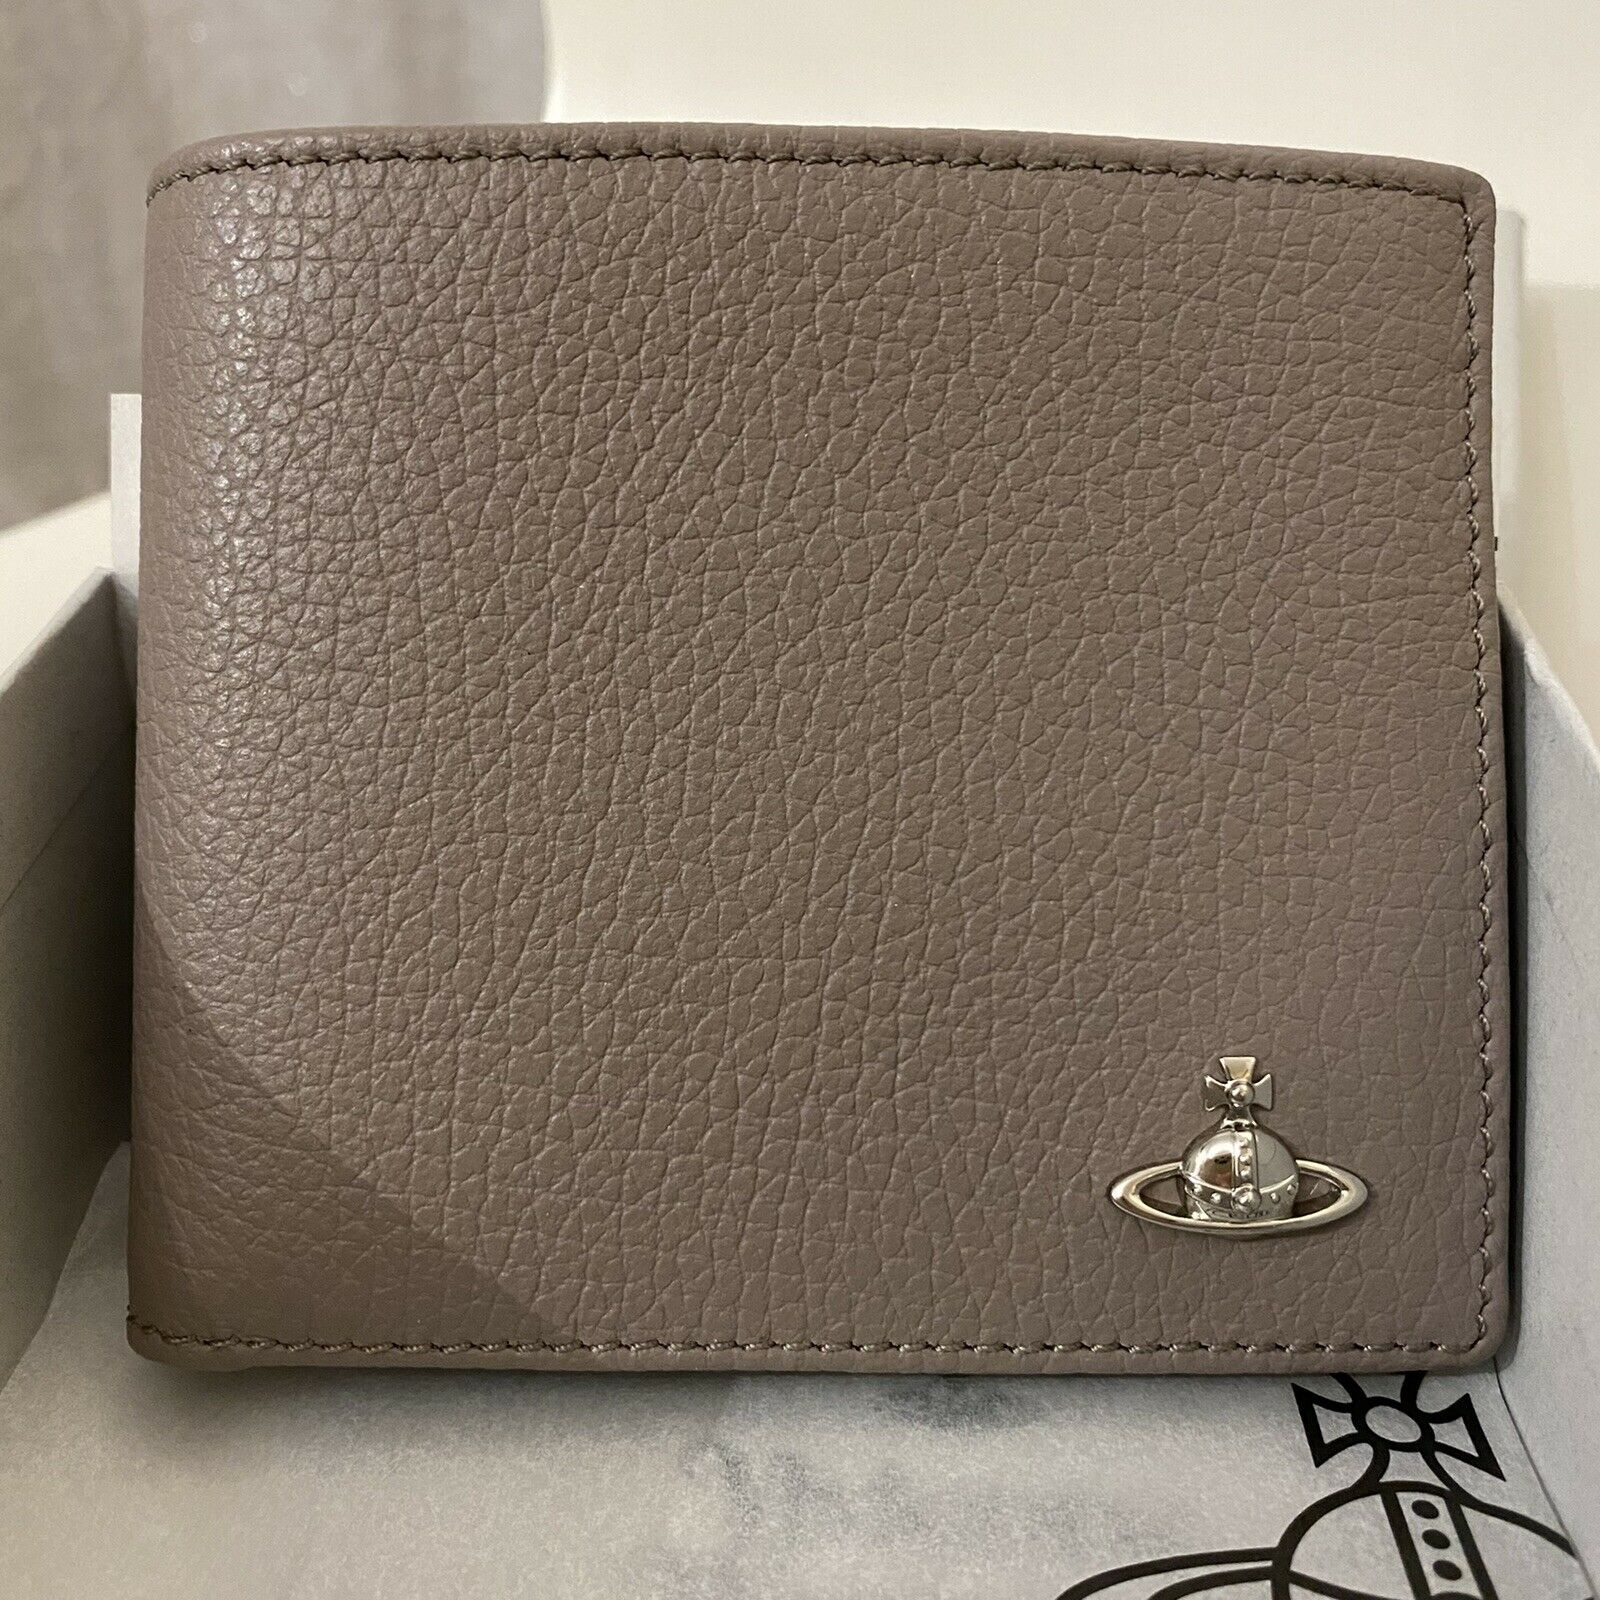 Vivienne Westwood Mens Leather Bifold Wallet Silver Orb - Taupe